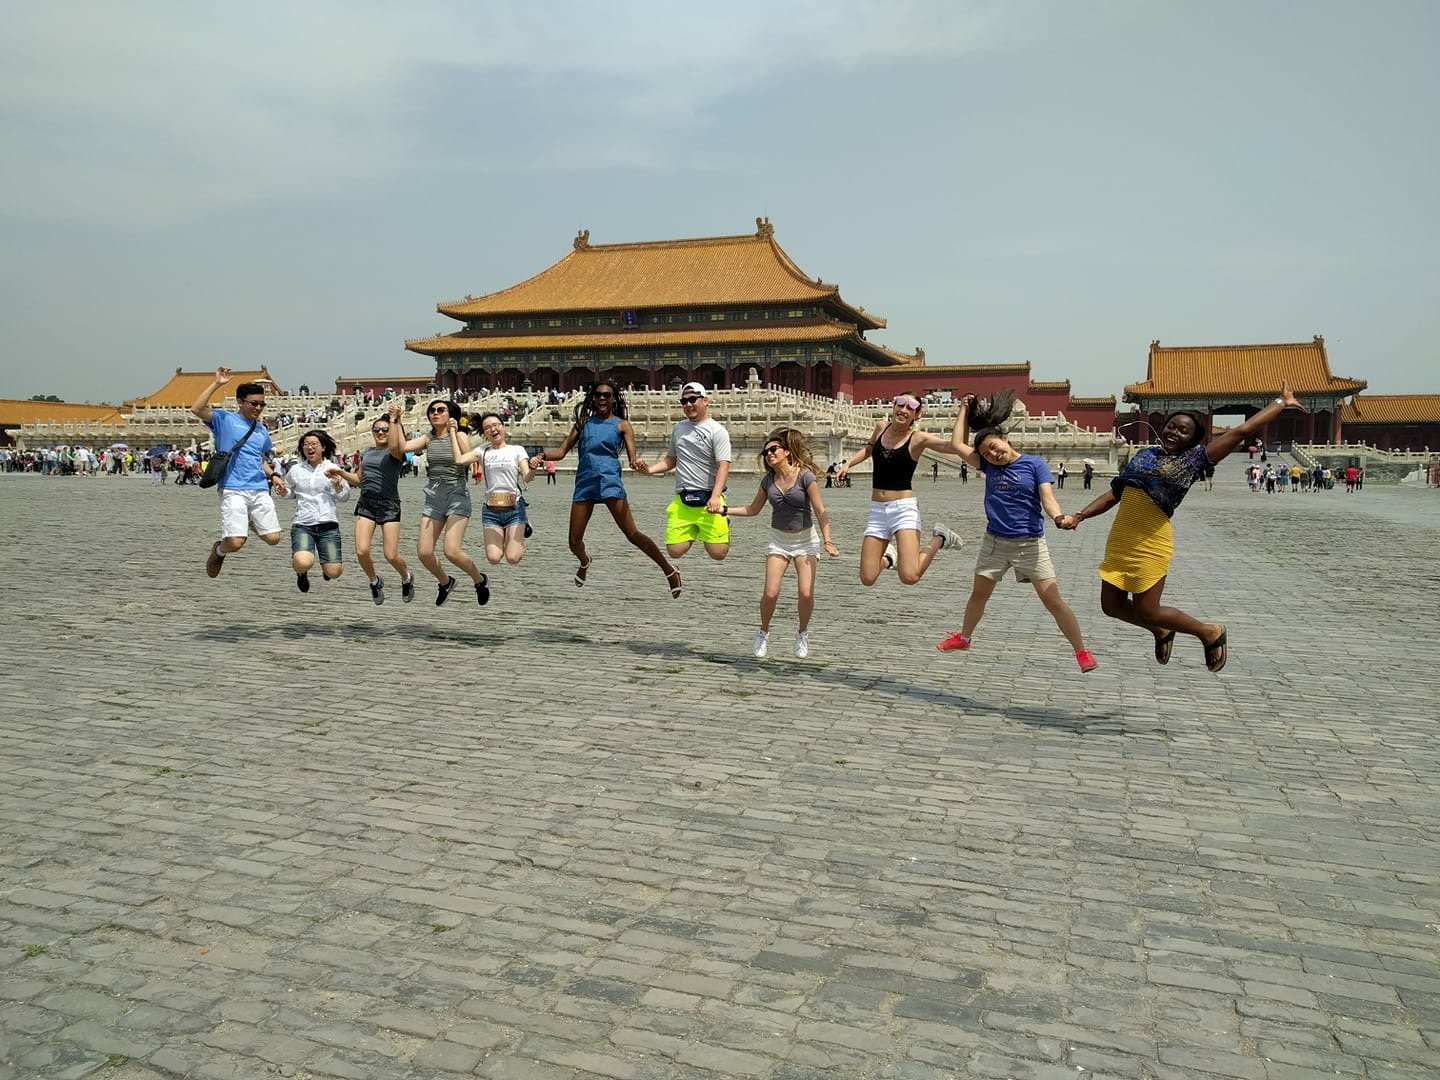 UConn students visit the Forbidden City in China